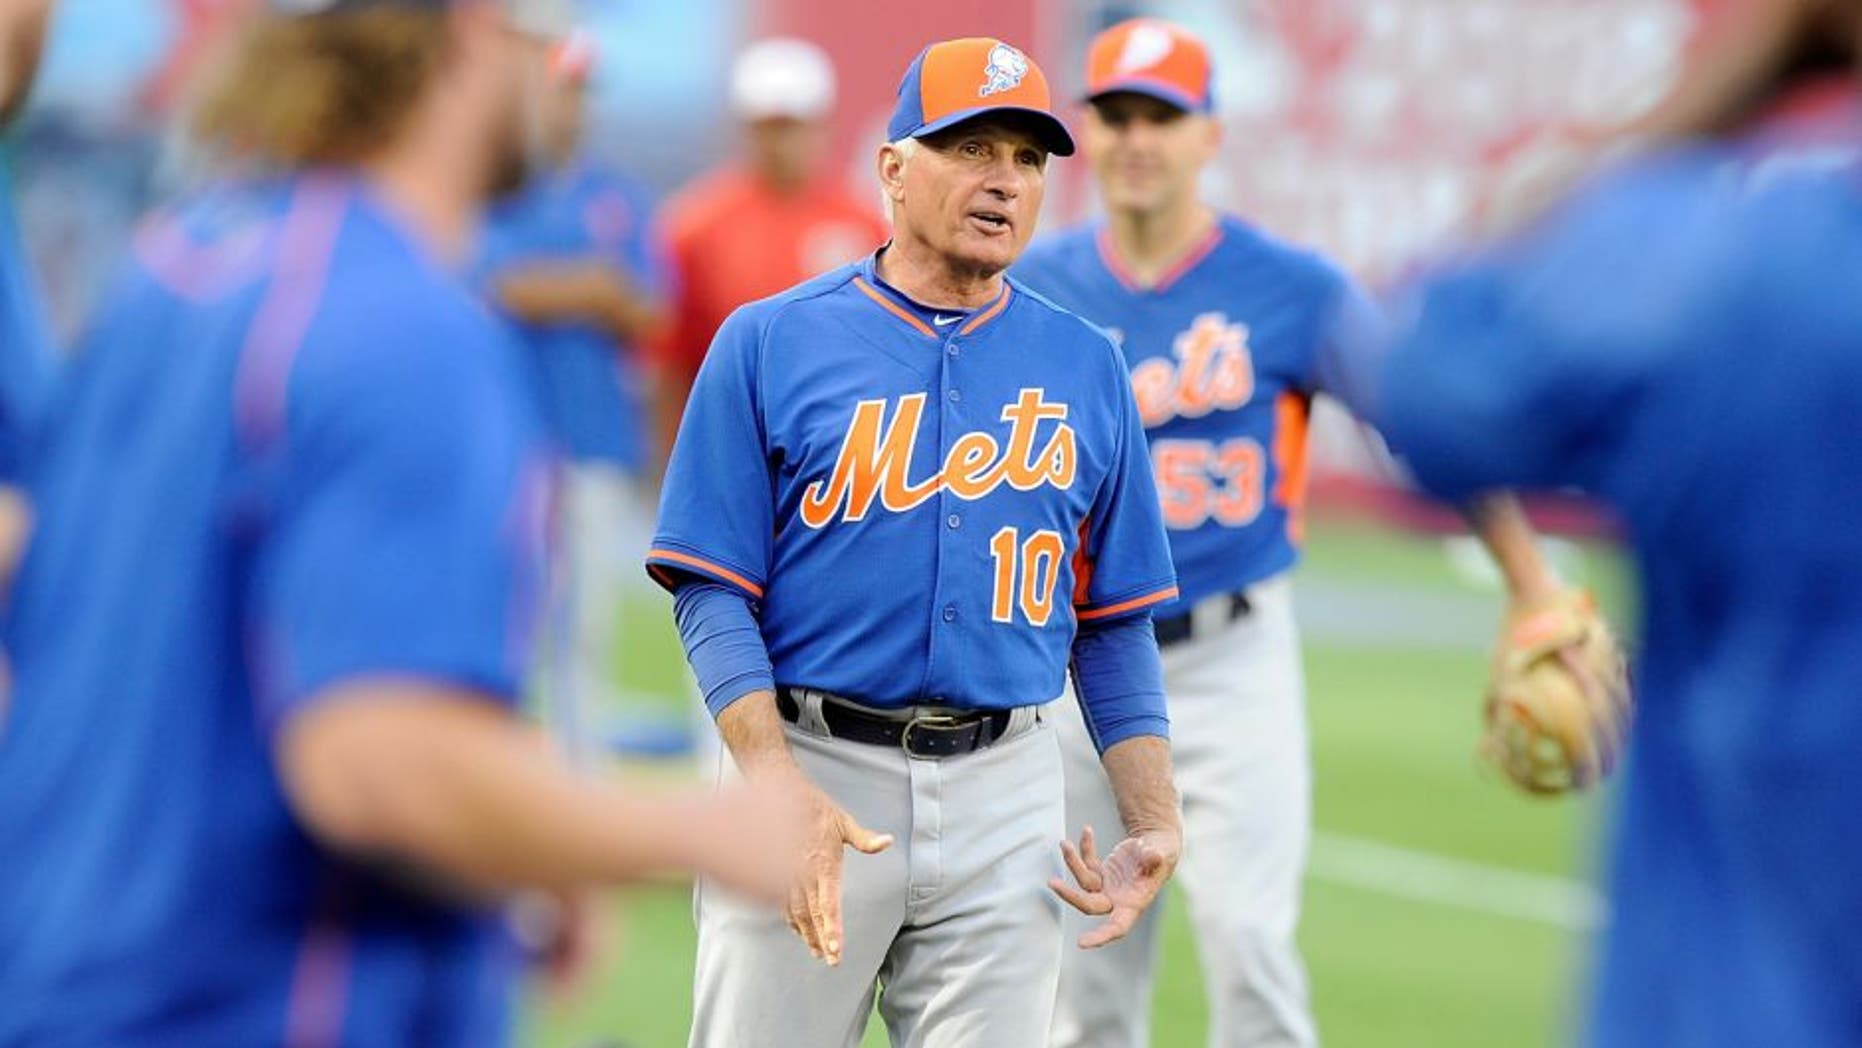 WASHINGTON, DC - SEPTEMBER 08: Terry Collins #10 of the New York Mets watches batting practice before the game against the Washington Nationals at Nationals Park on September 8, 2015 in Washington, DC. (Photo by Greg Fiume/Getty Images)